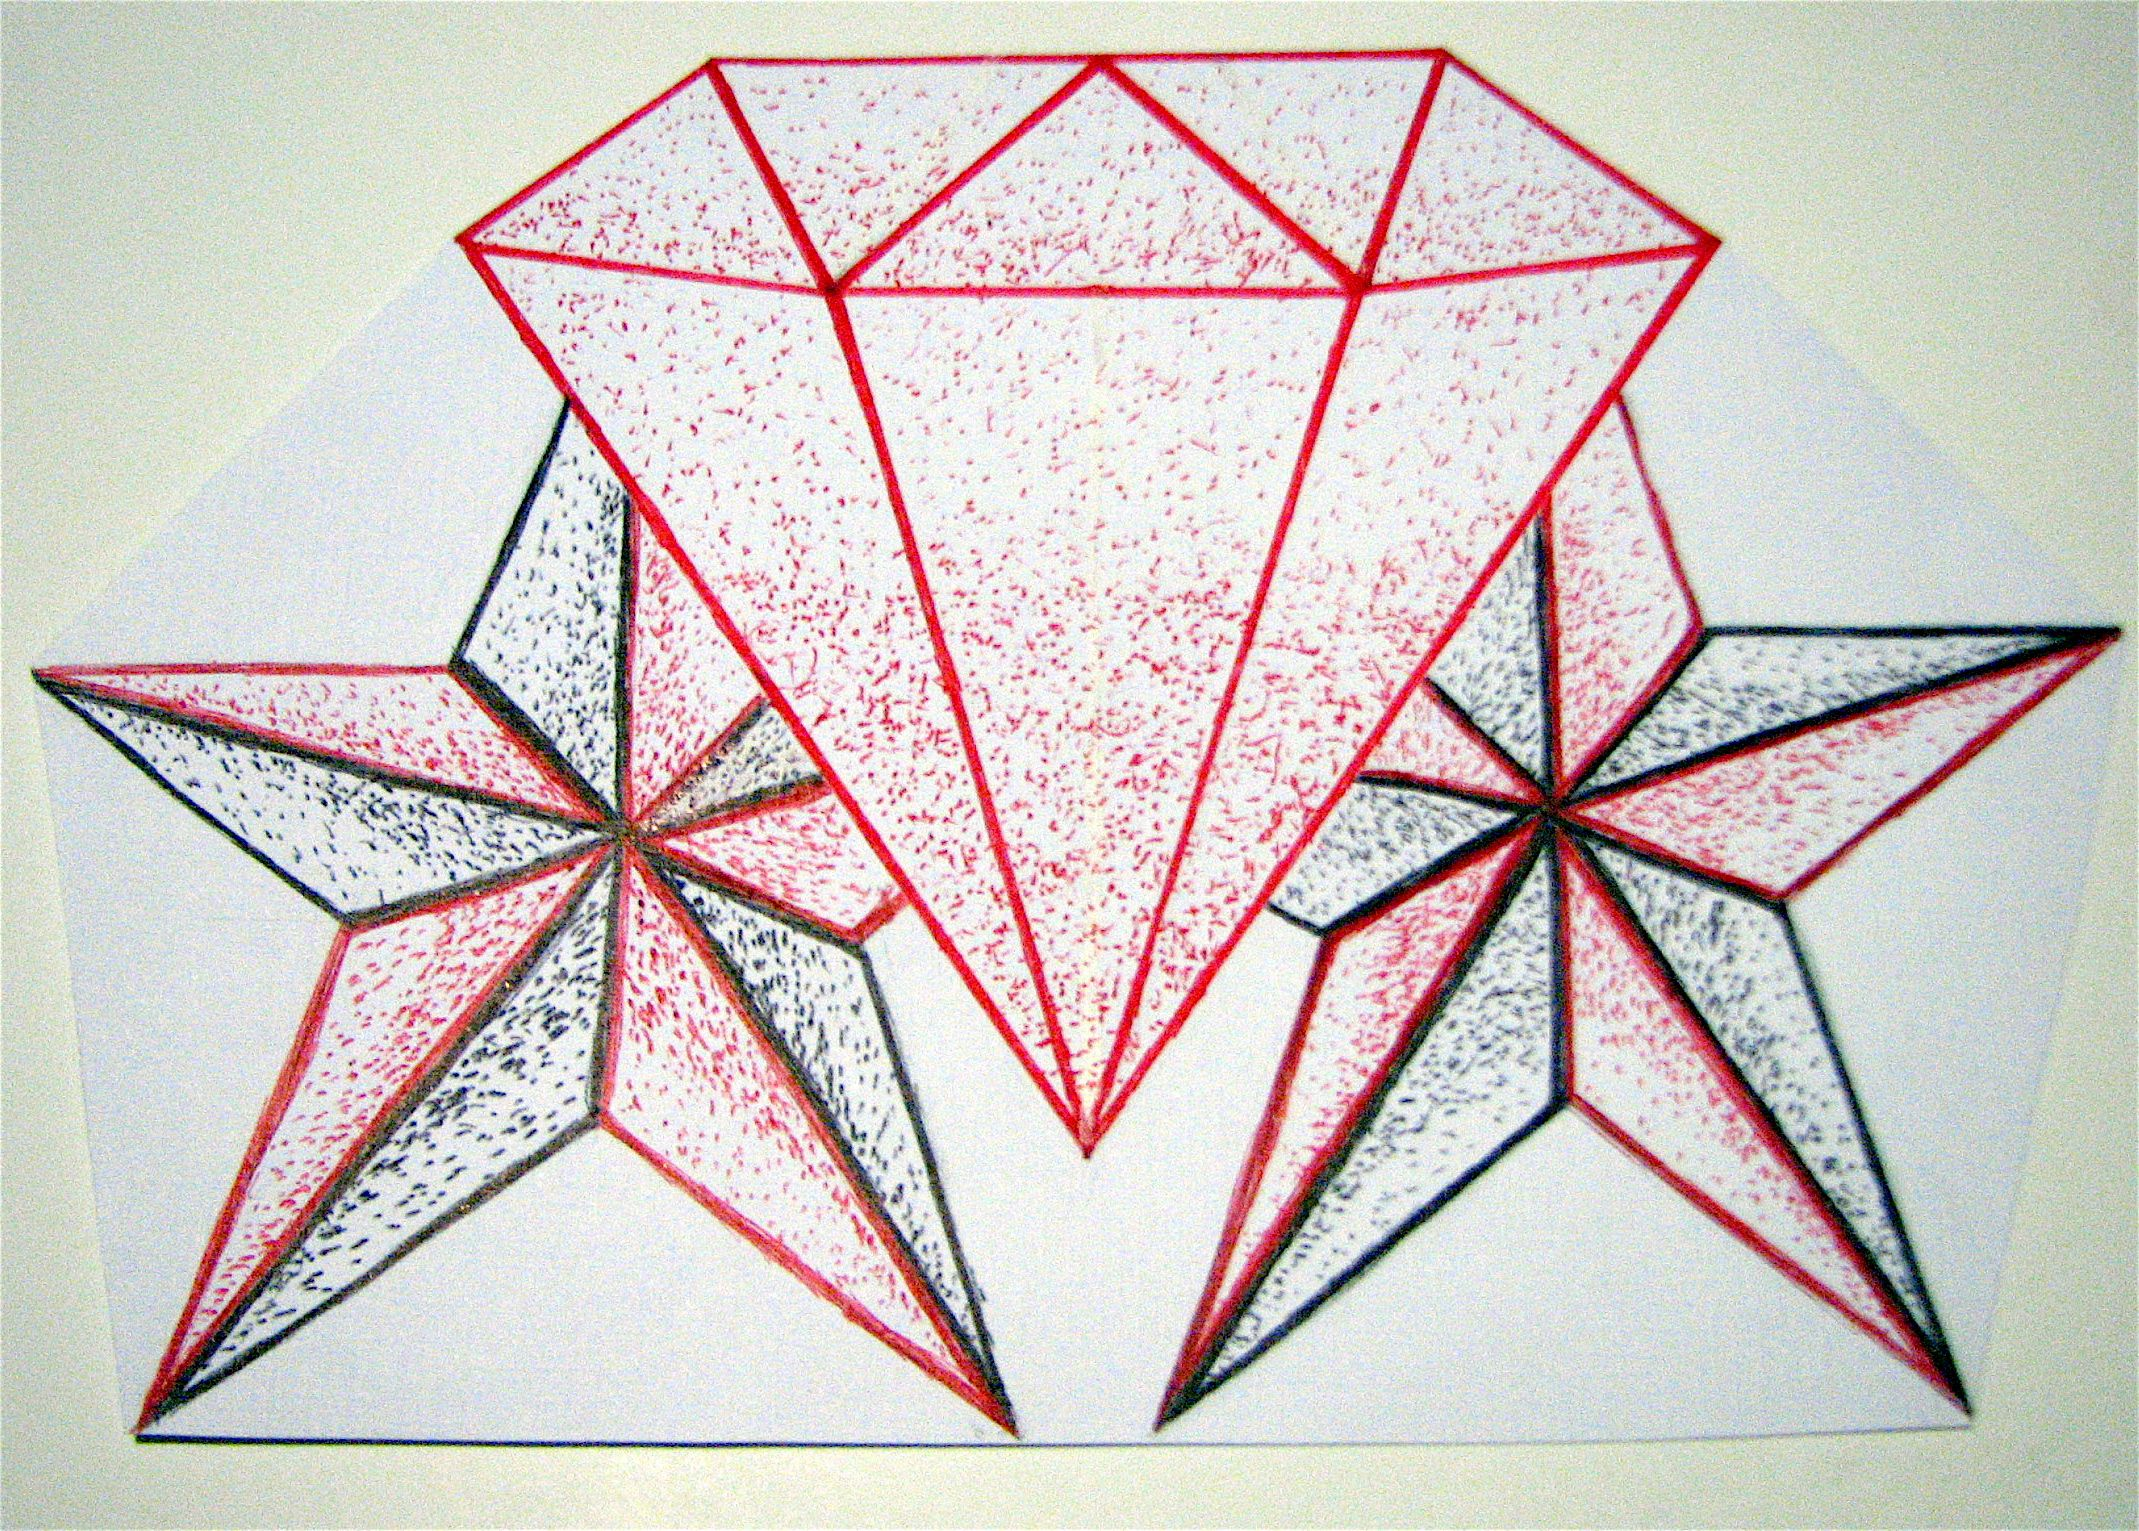 Diamond Drawing Easy at GetDrawings.com | Free for personal use ...